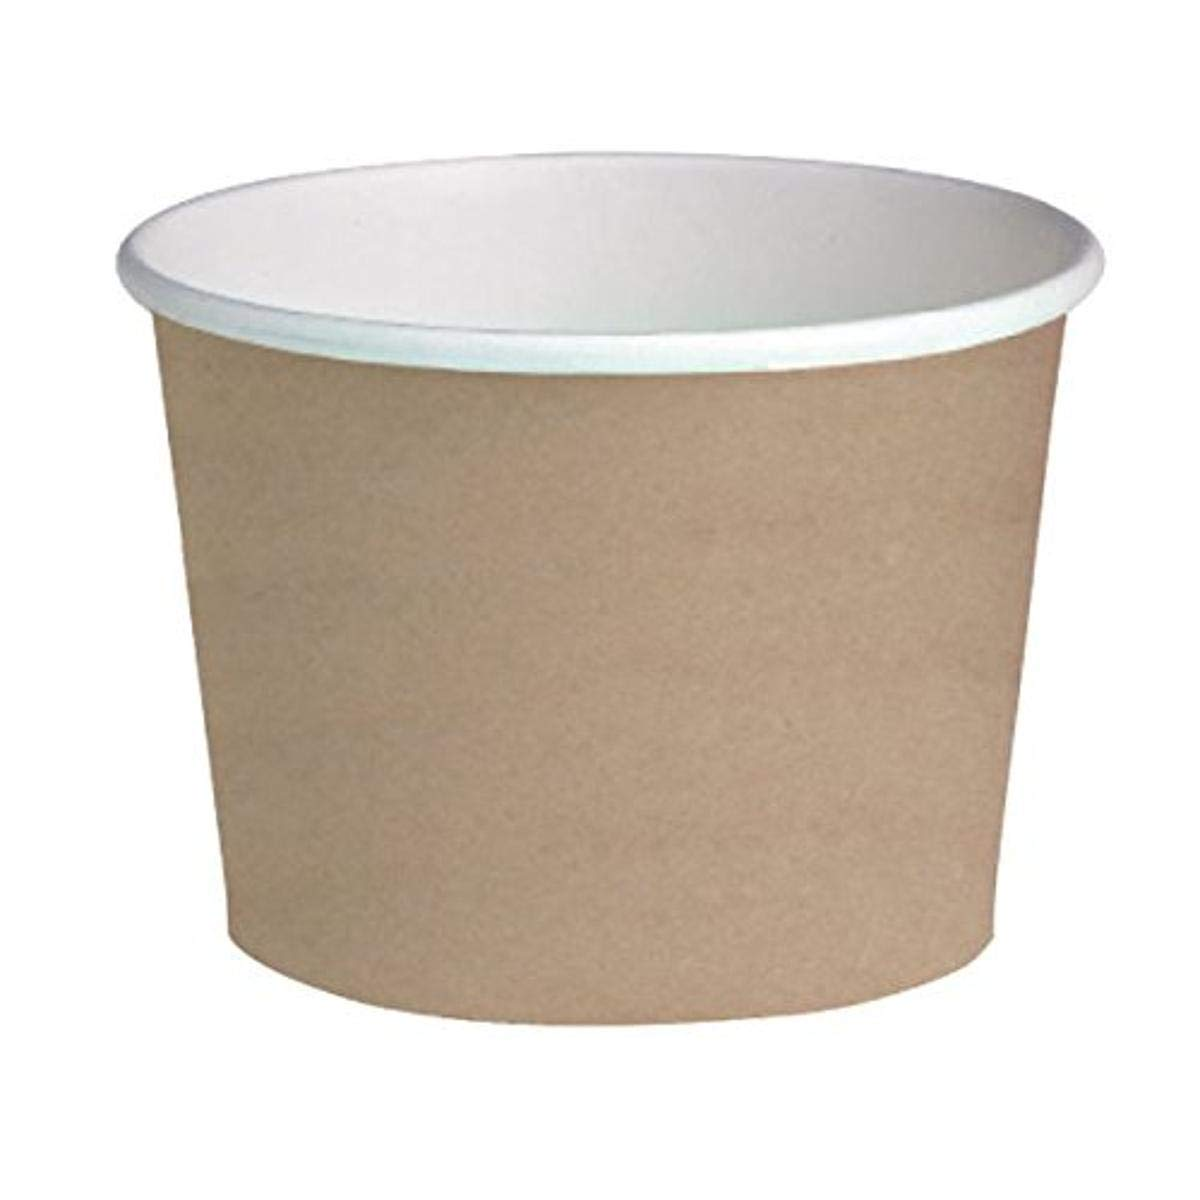 Round Kraft Paper Deli Containers (Case of 50), PacknWood - Disposable Food Container (24 oz, 4.9